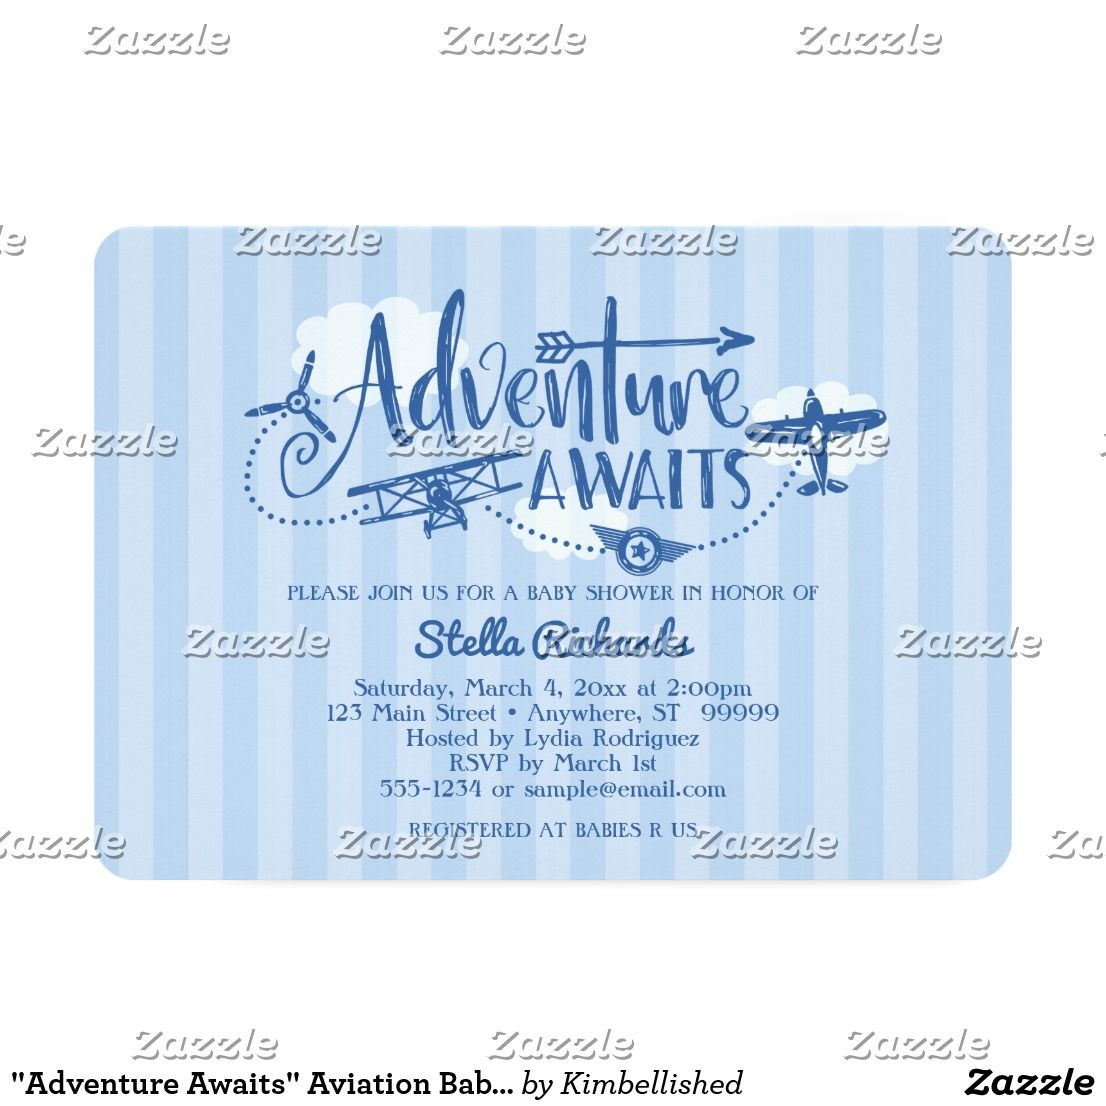 sample email invitation sample funeral reception invitation wording